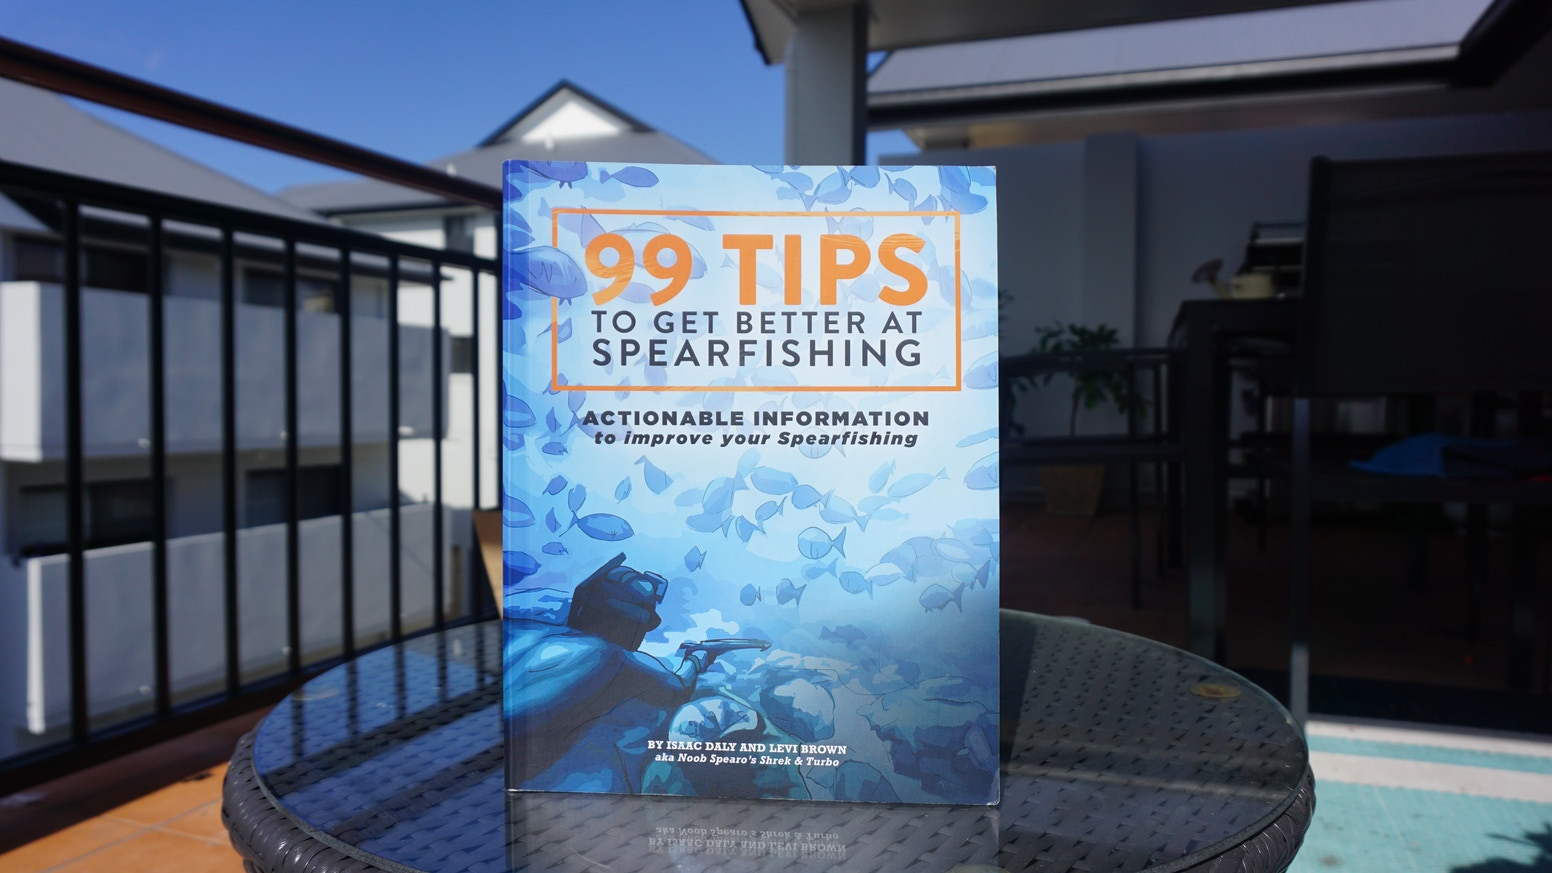 99 Tips to Get Better at Spearfishing is the ultimate spearfishing book. Sourced from 3 years interviewing the worlds best spearos.